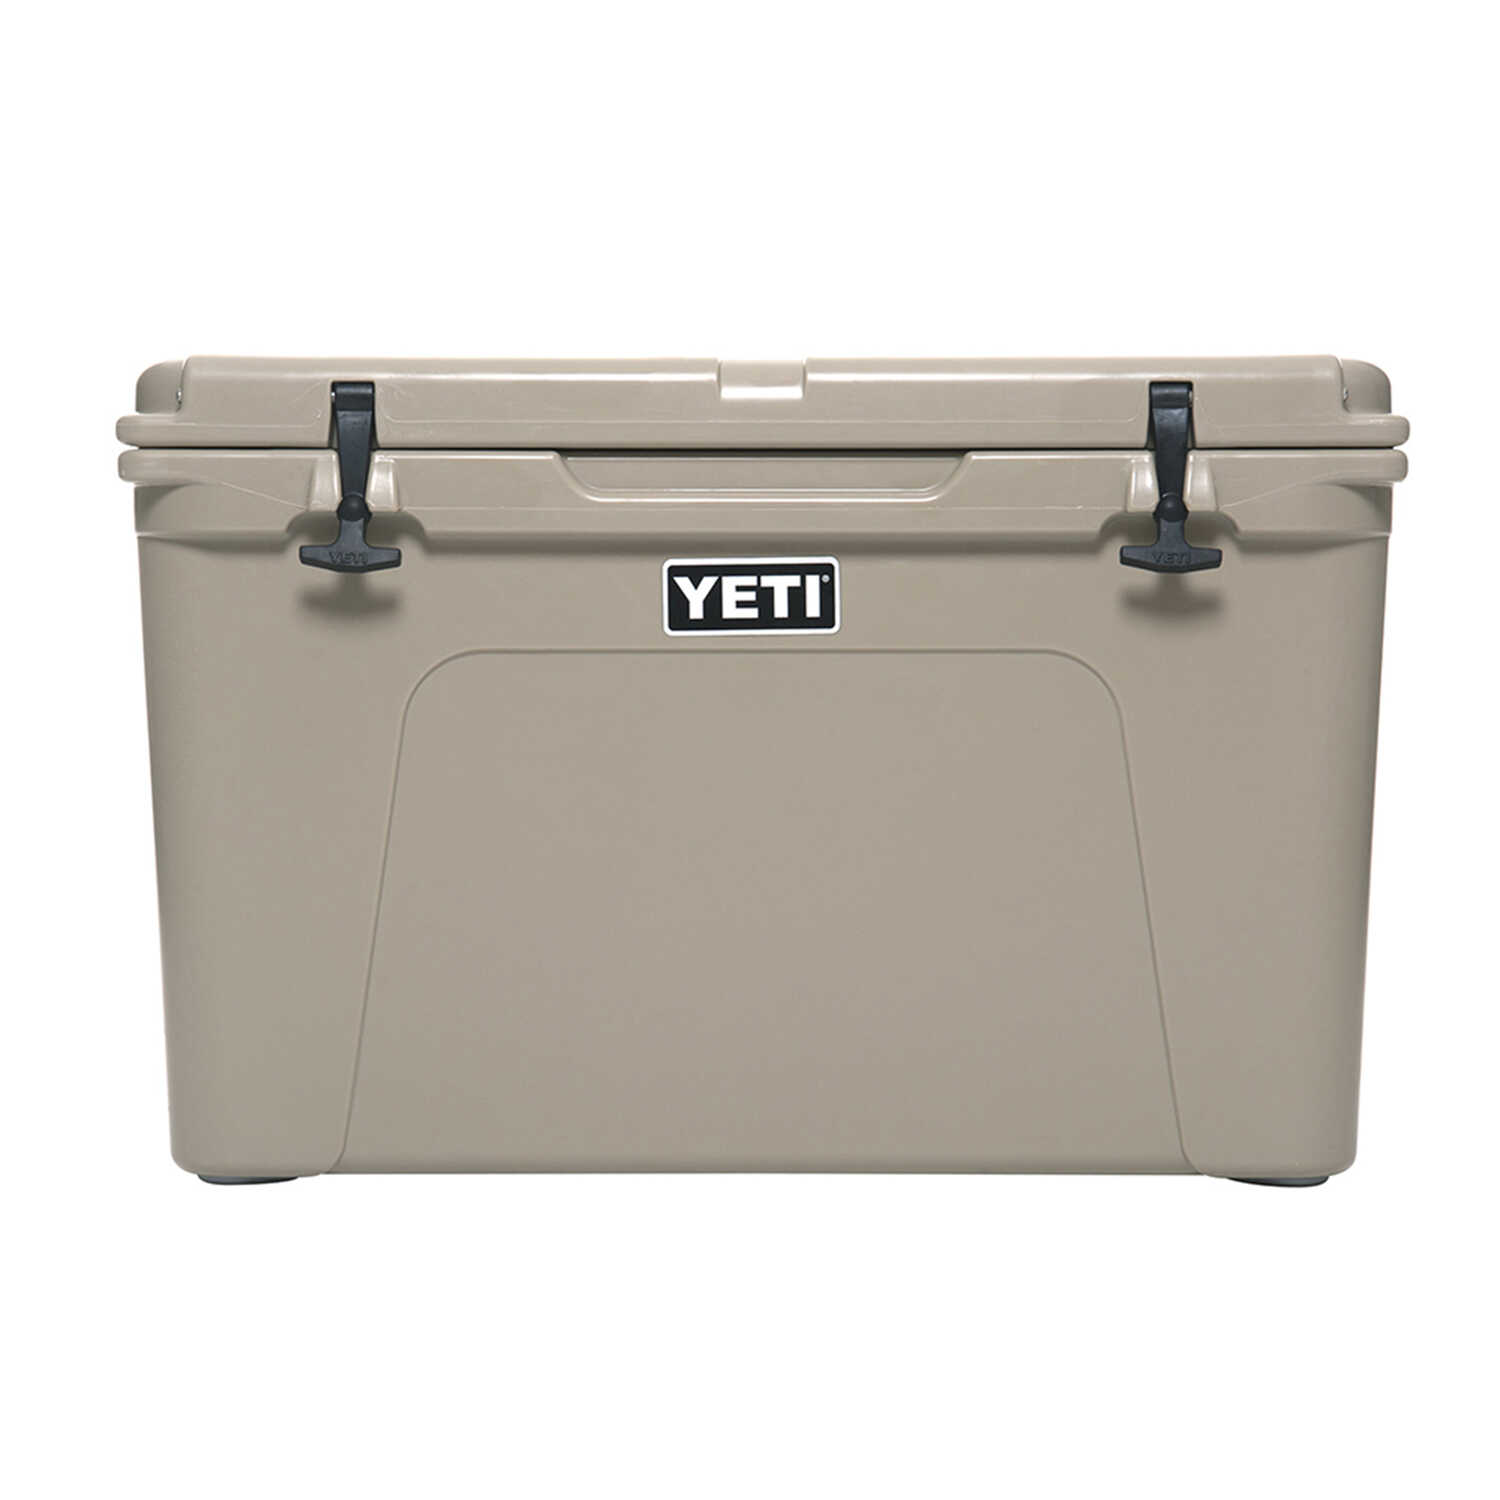 YETI  Tundra 105  Cooler  59 cans Tan